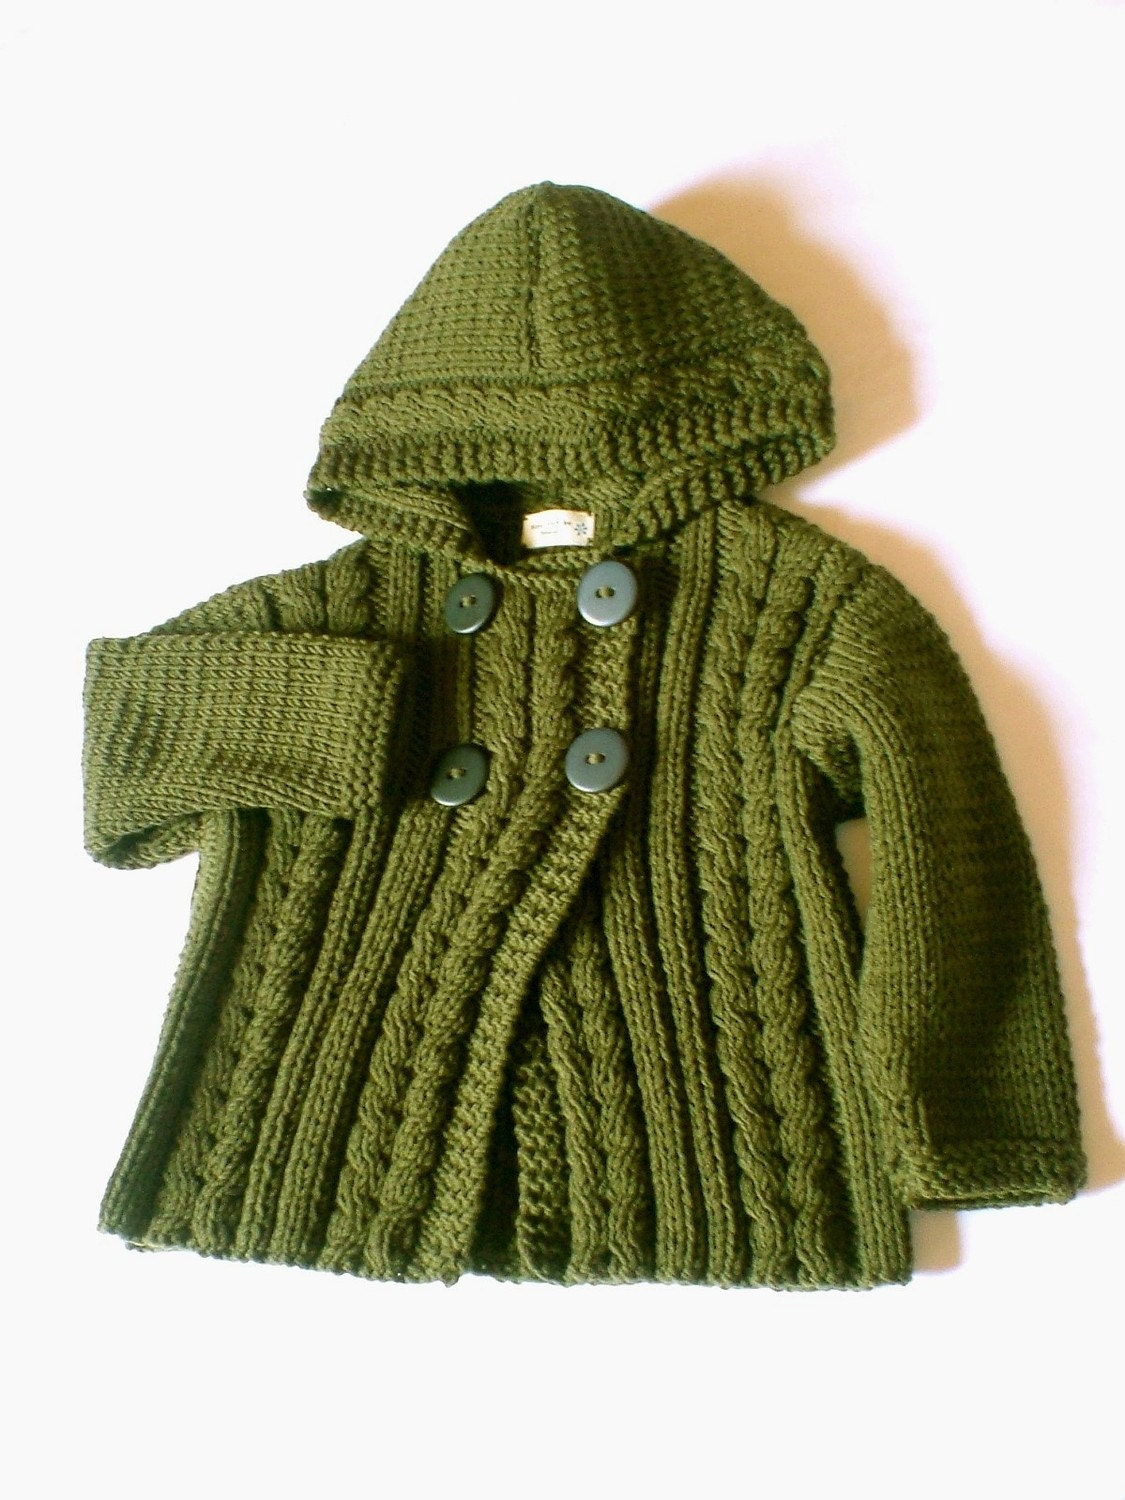 Knitting Pattern Child s Hooded Jacket : Hand Knit Wool Hooded Jacket Cardigan for Boy or Girl by ...